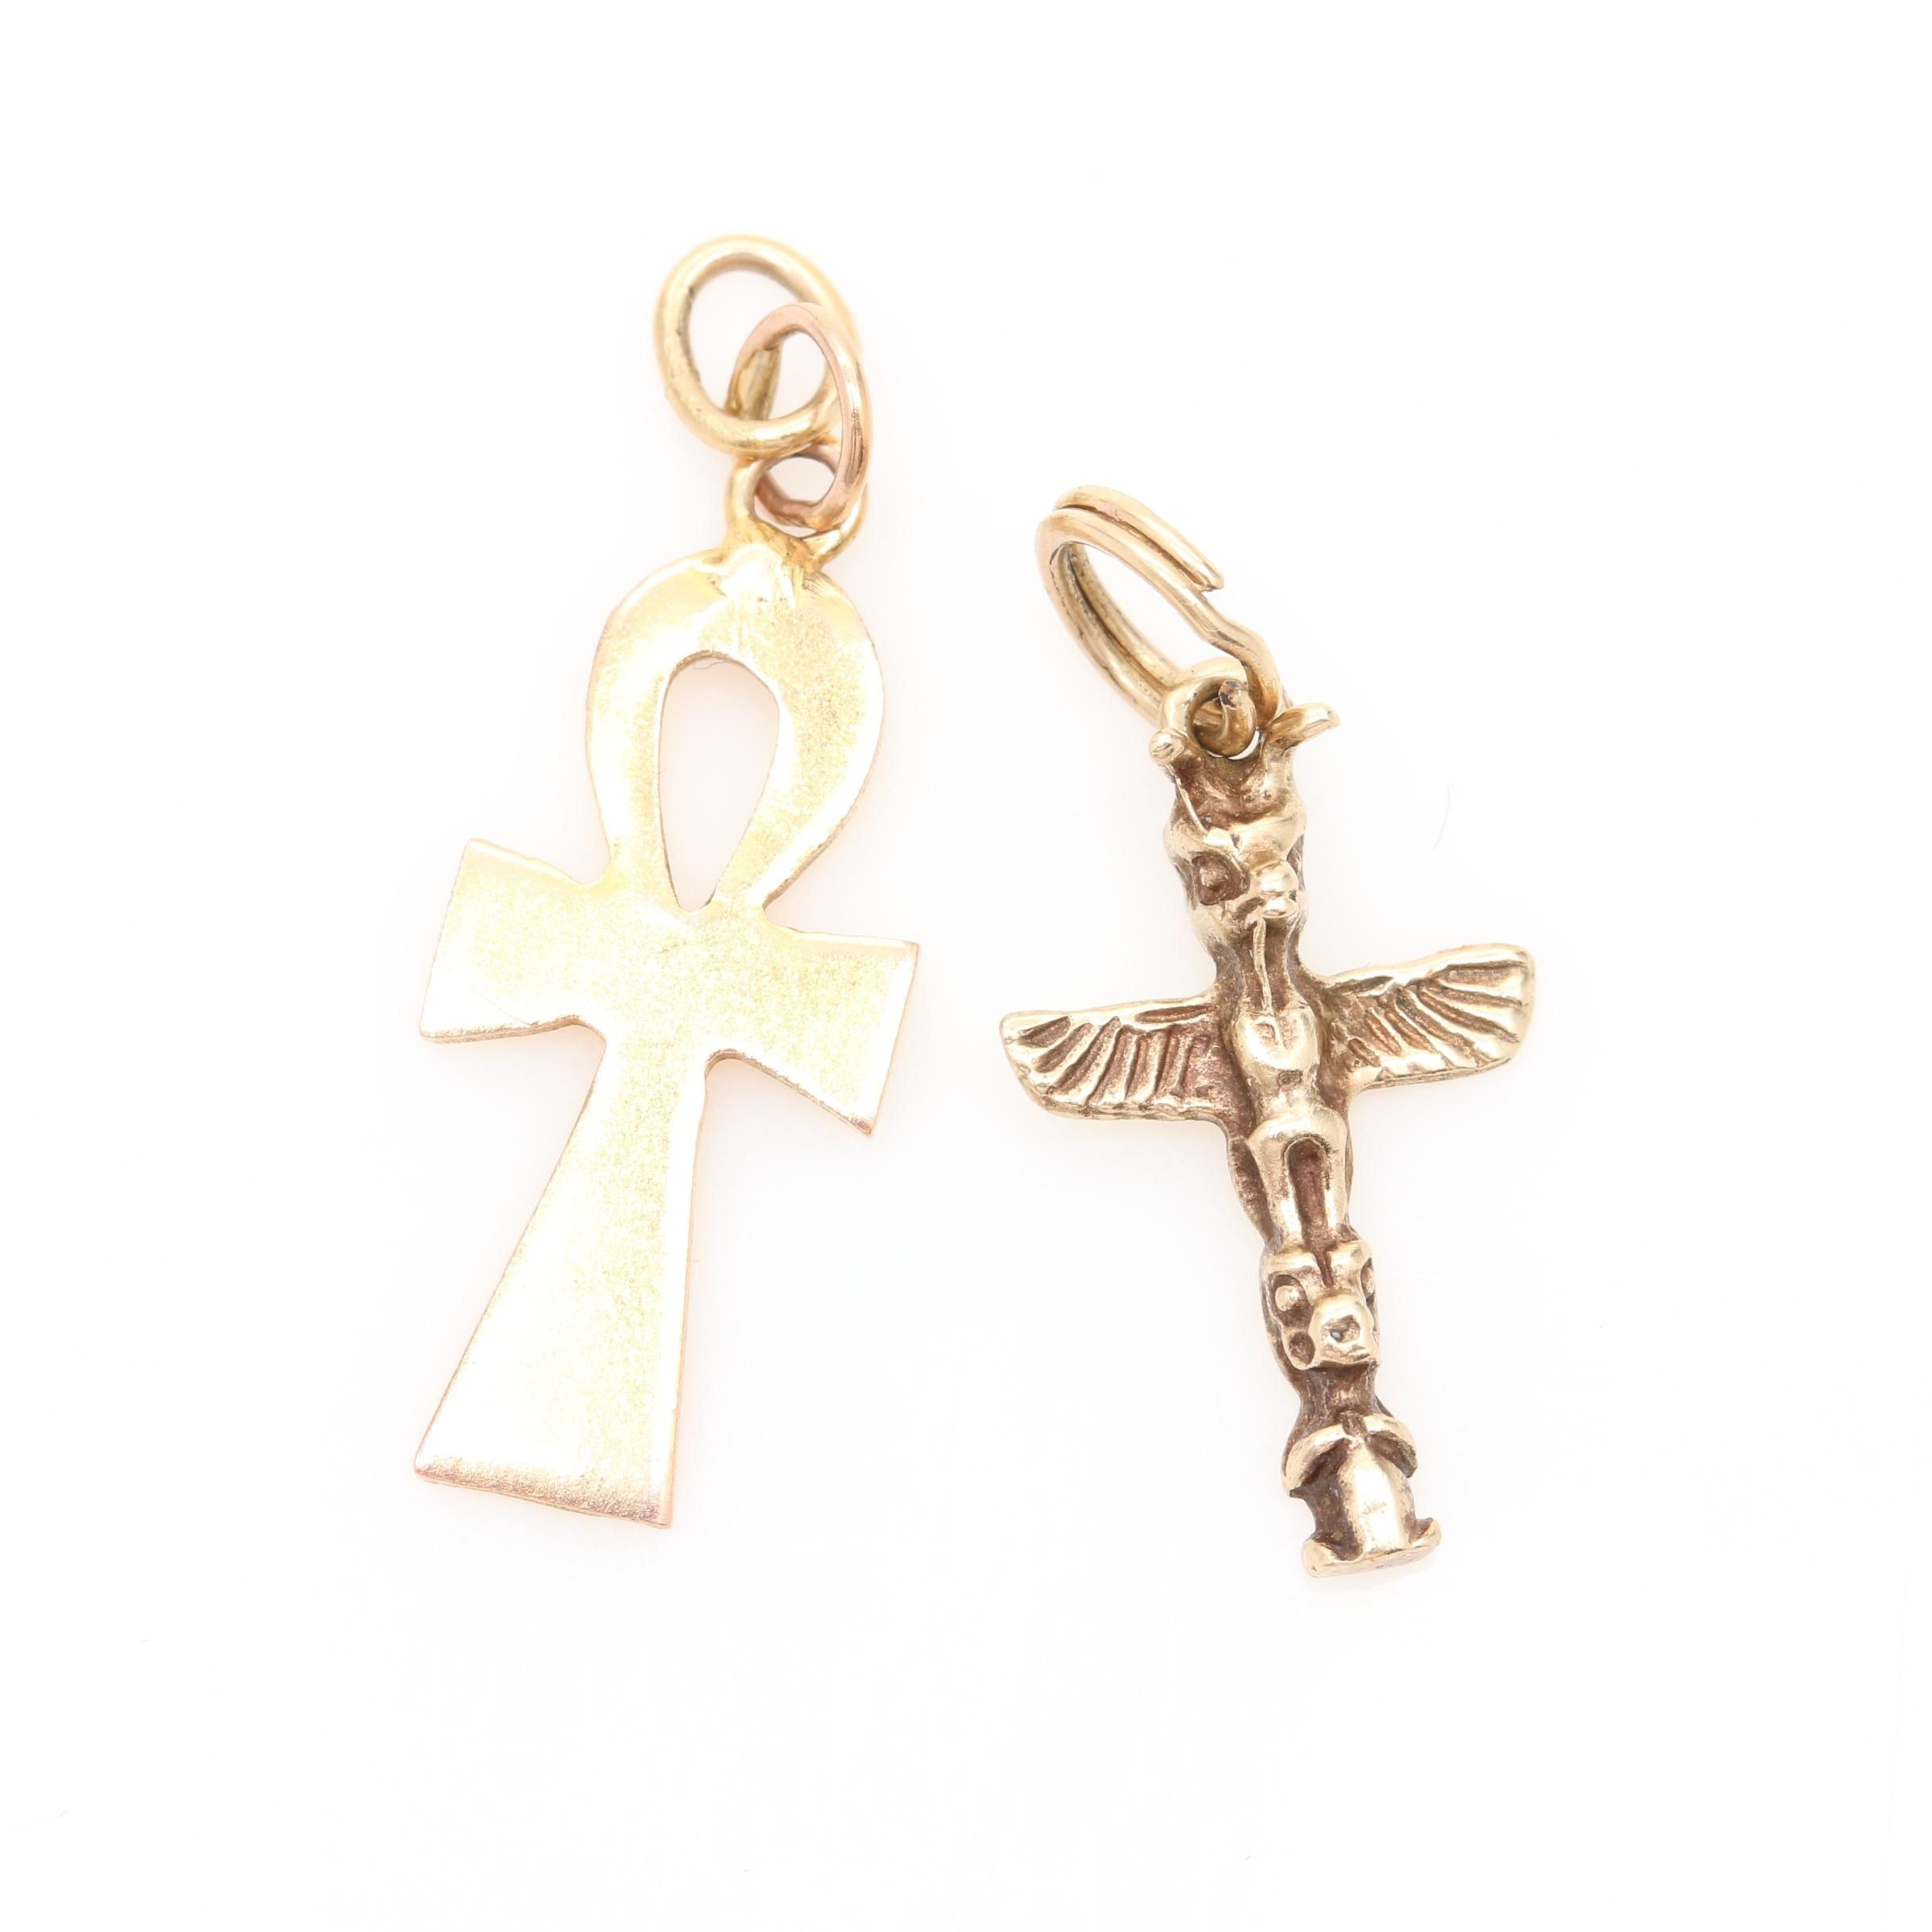 14K Yellow Gold Totem and Ankh Charm Pendants